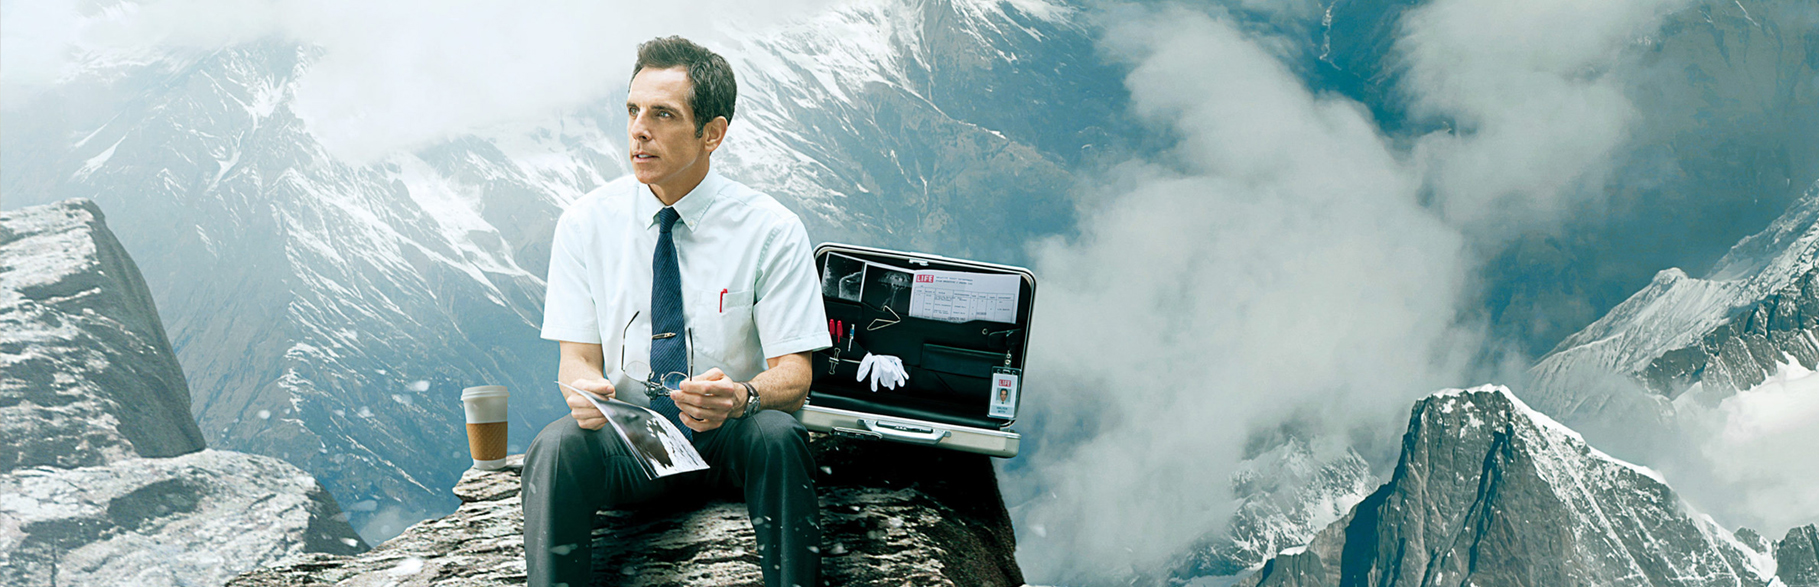 Tracing The Secret Life Of Walter Mitty In Iceland Travel